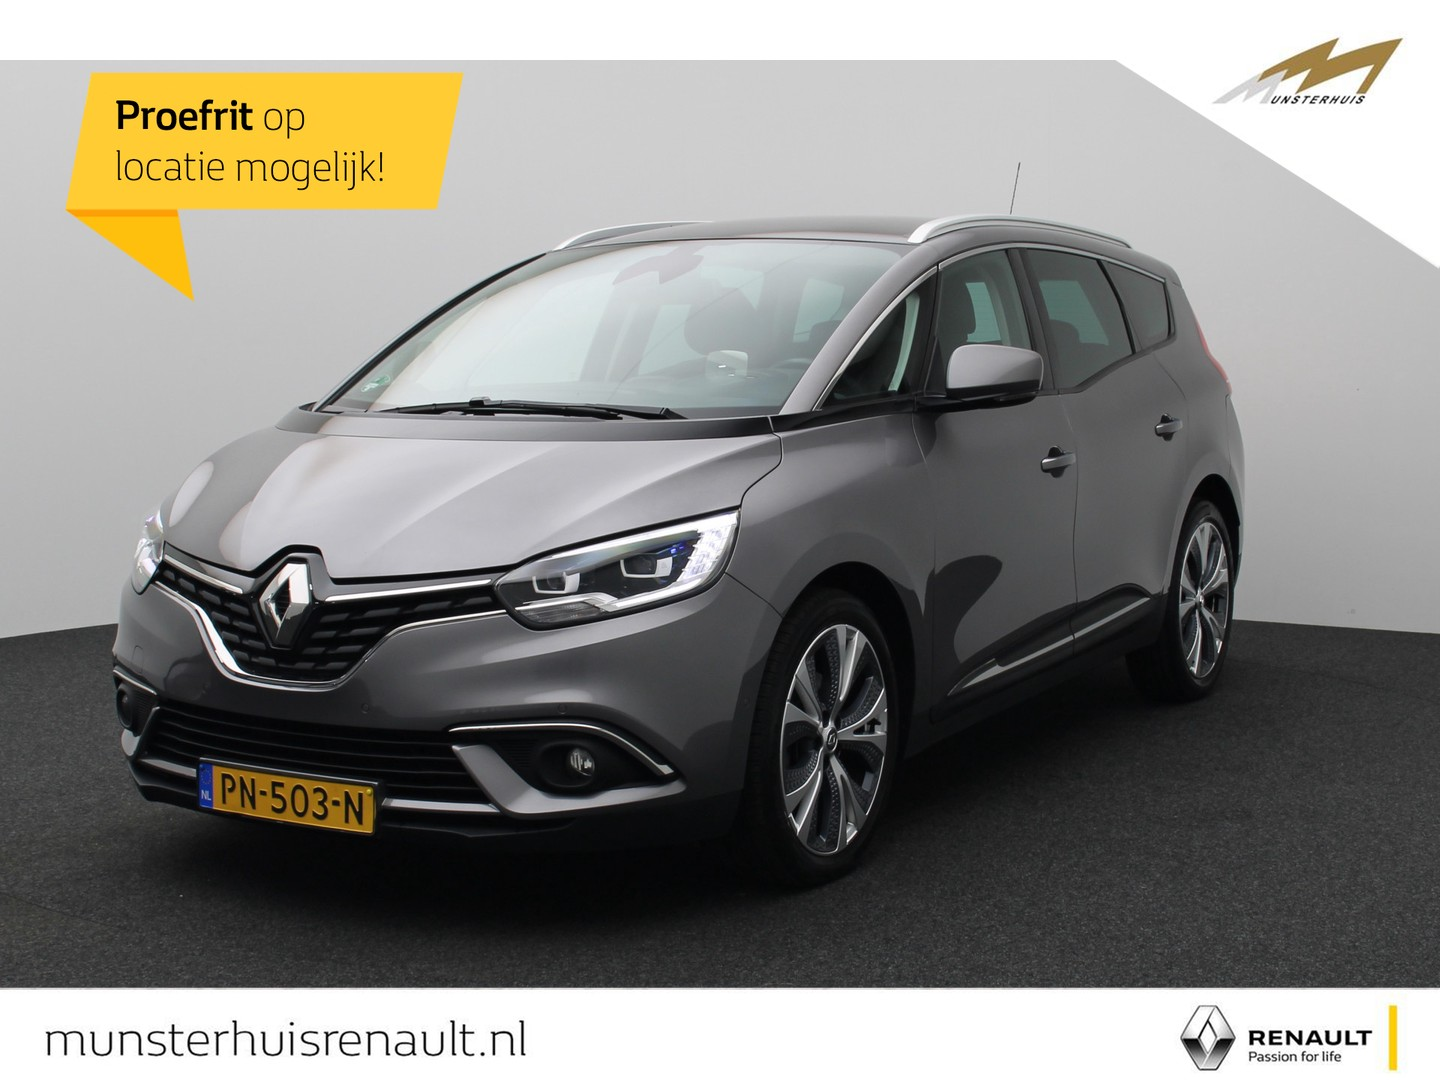 Renault Grand scénic Dci 110 edc intens - automaat -